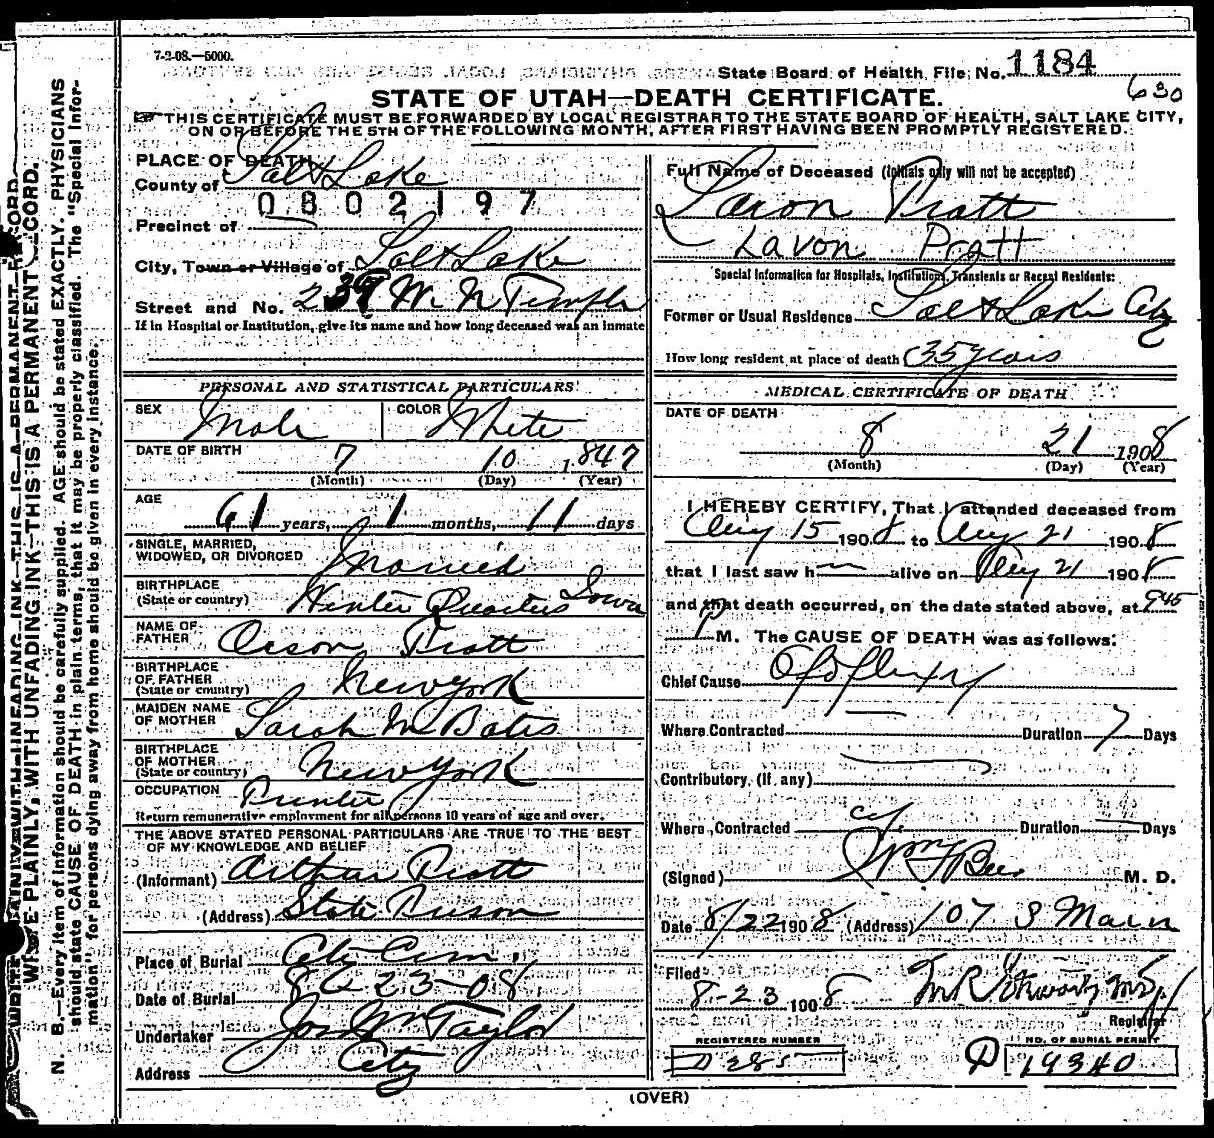 death certificate of laron pratt